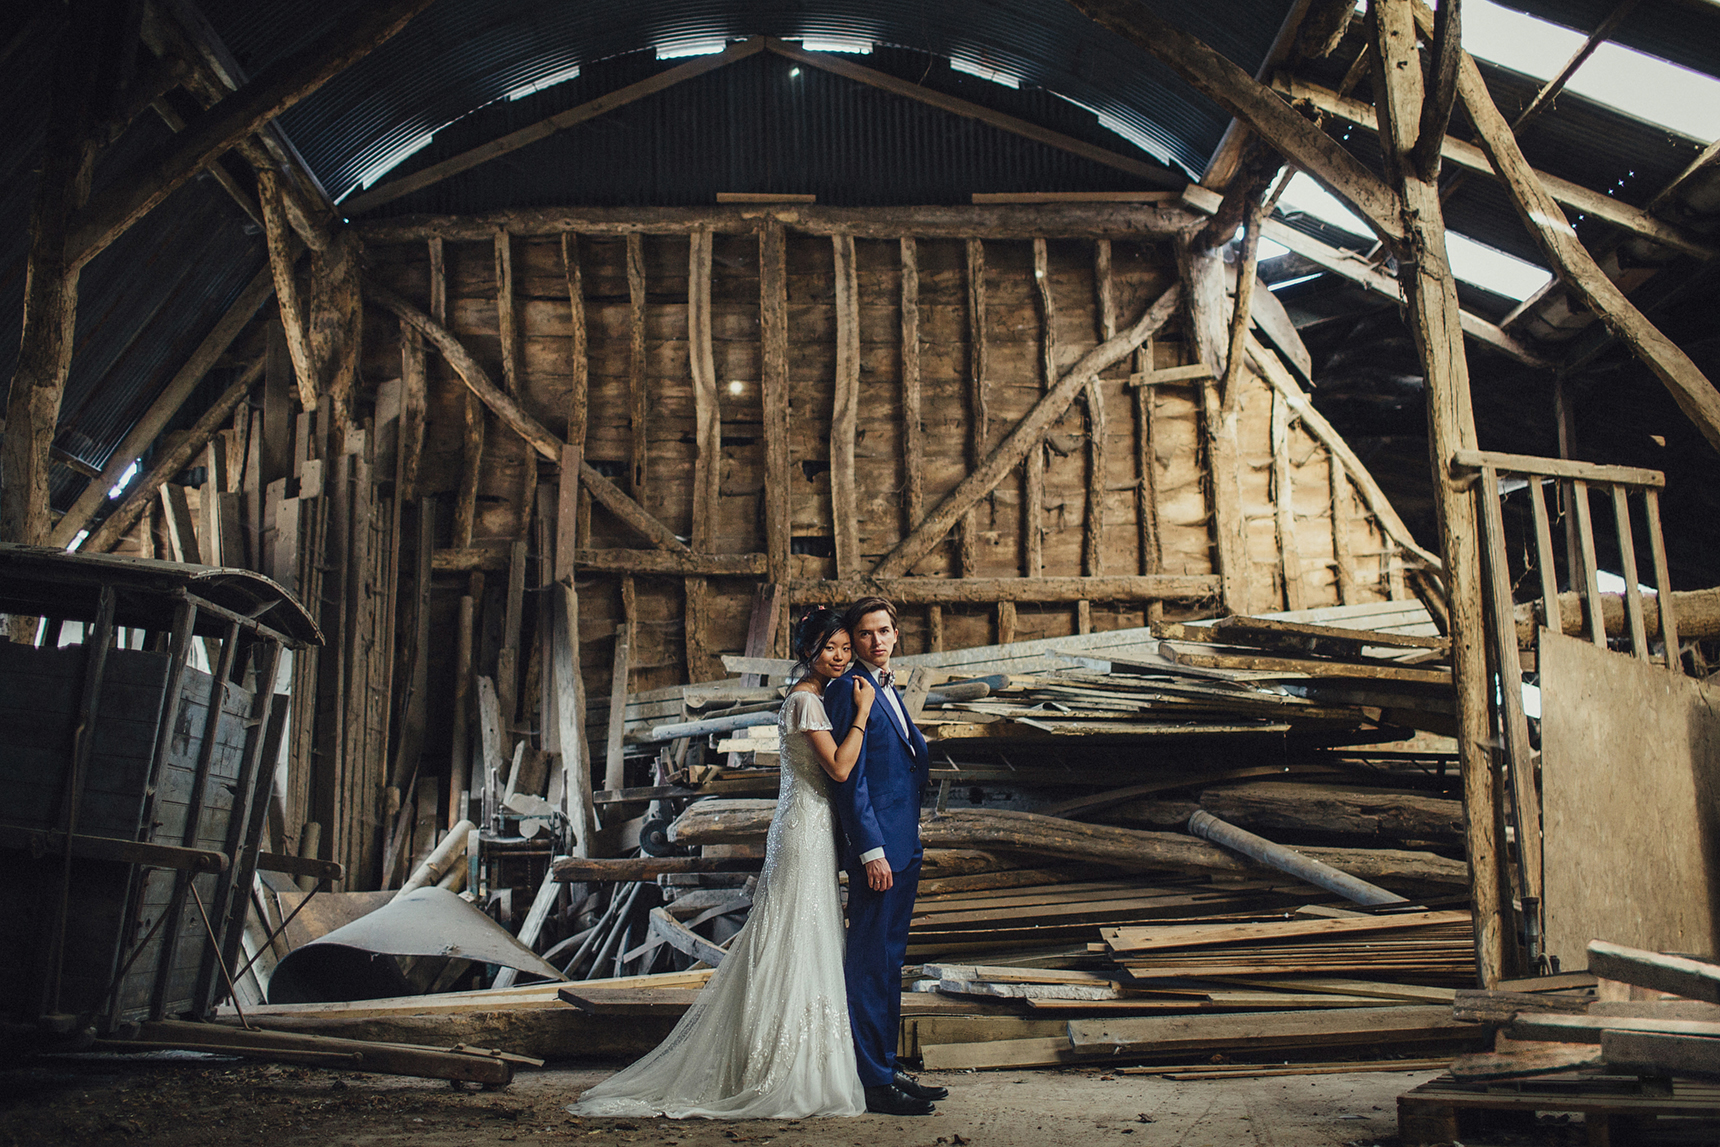 The Manor Barn Harlton weddings